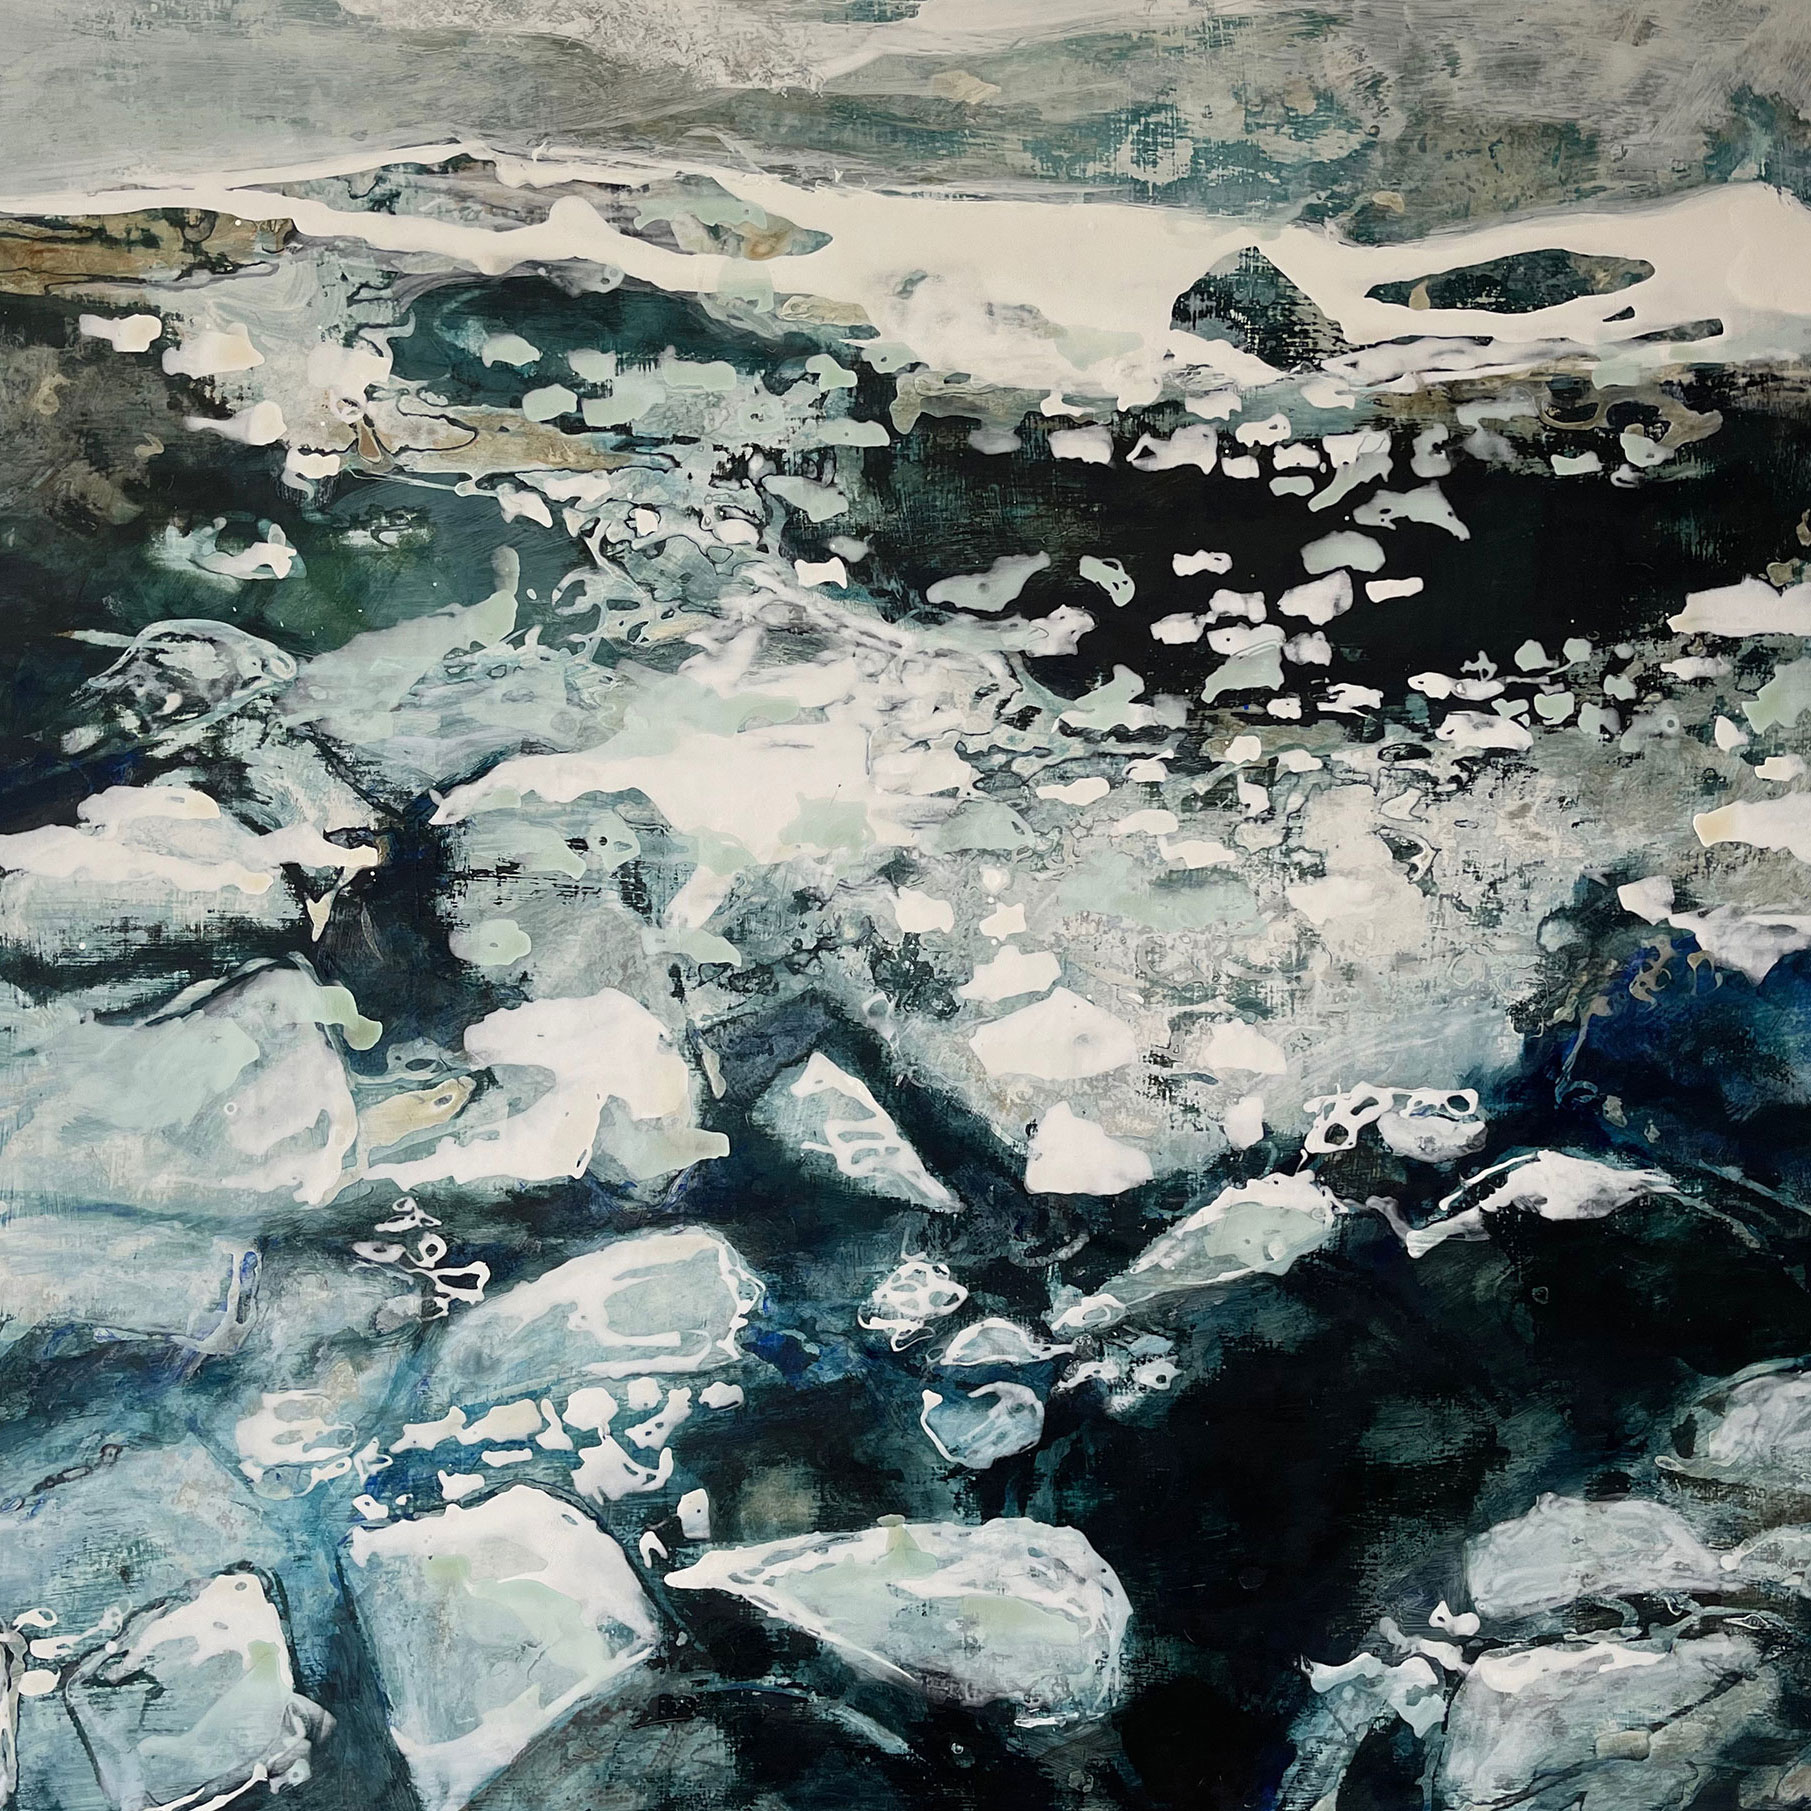 Spring thaw, 24cm x 24cm, Pigment, gesso and size on board